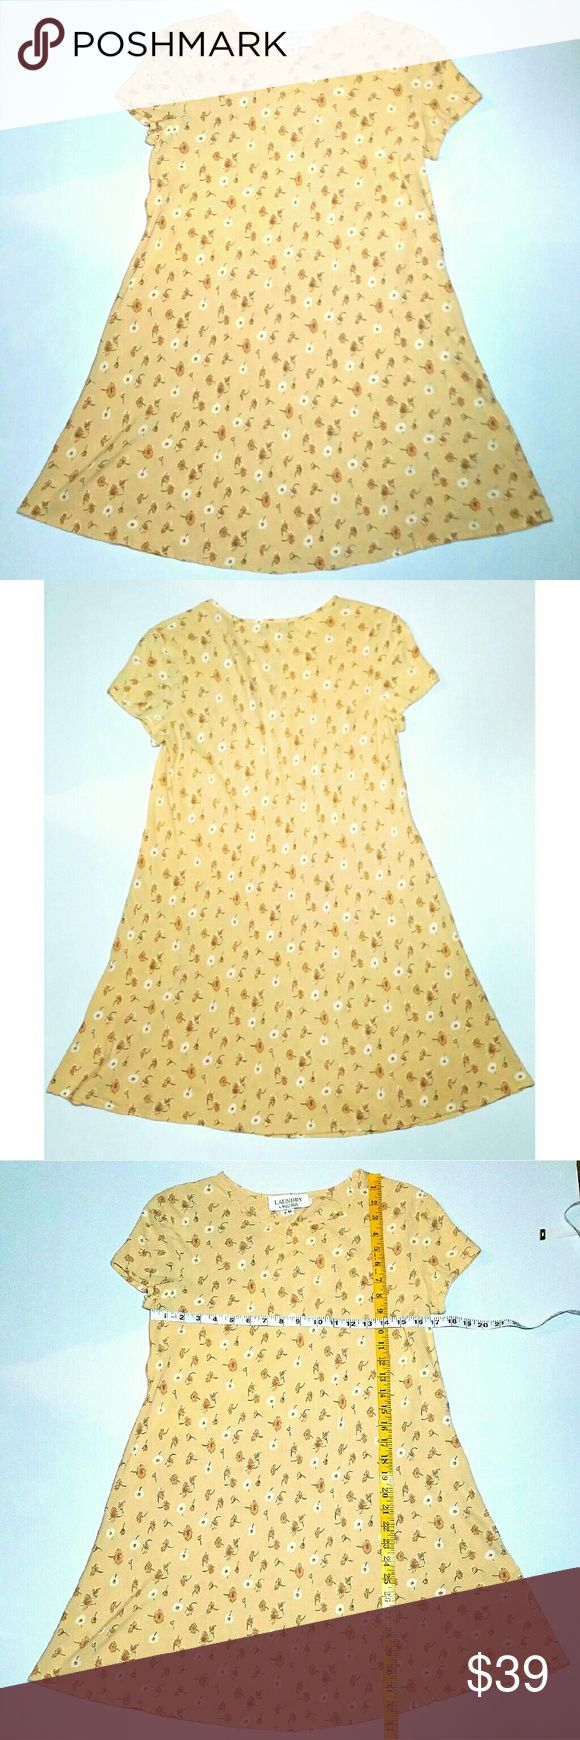 Vintage Laundry Shelli Segal 90s Floral 👗 Great condition! Small all over floral design on a buttery yellow/cream background. Dress is bias cut so the wider it goes, the shorter it gets. It will smooth nicely to curves. Throw some Docs on with leggings and a cute cardigan over! Laundry by Shelli Segal Dresses Mini